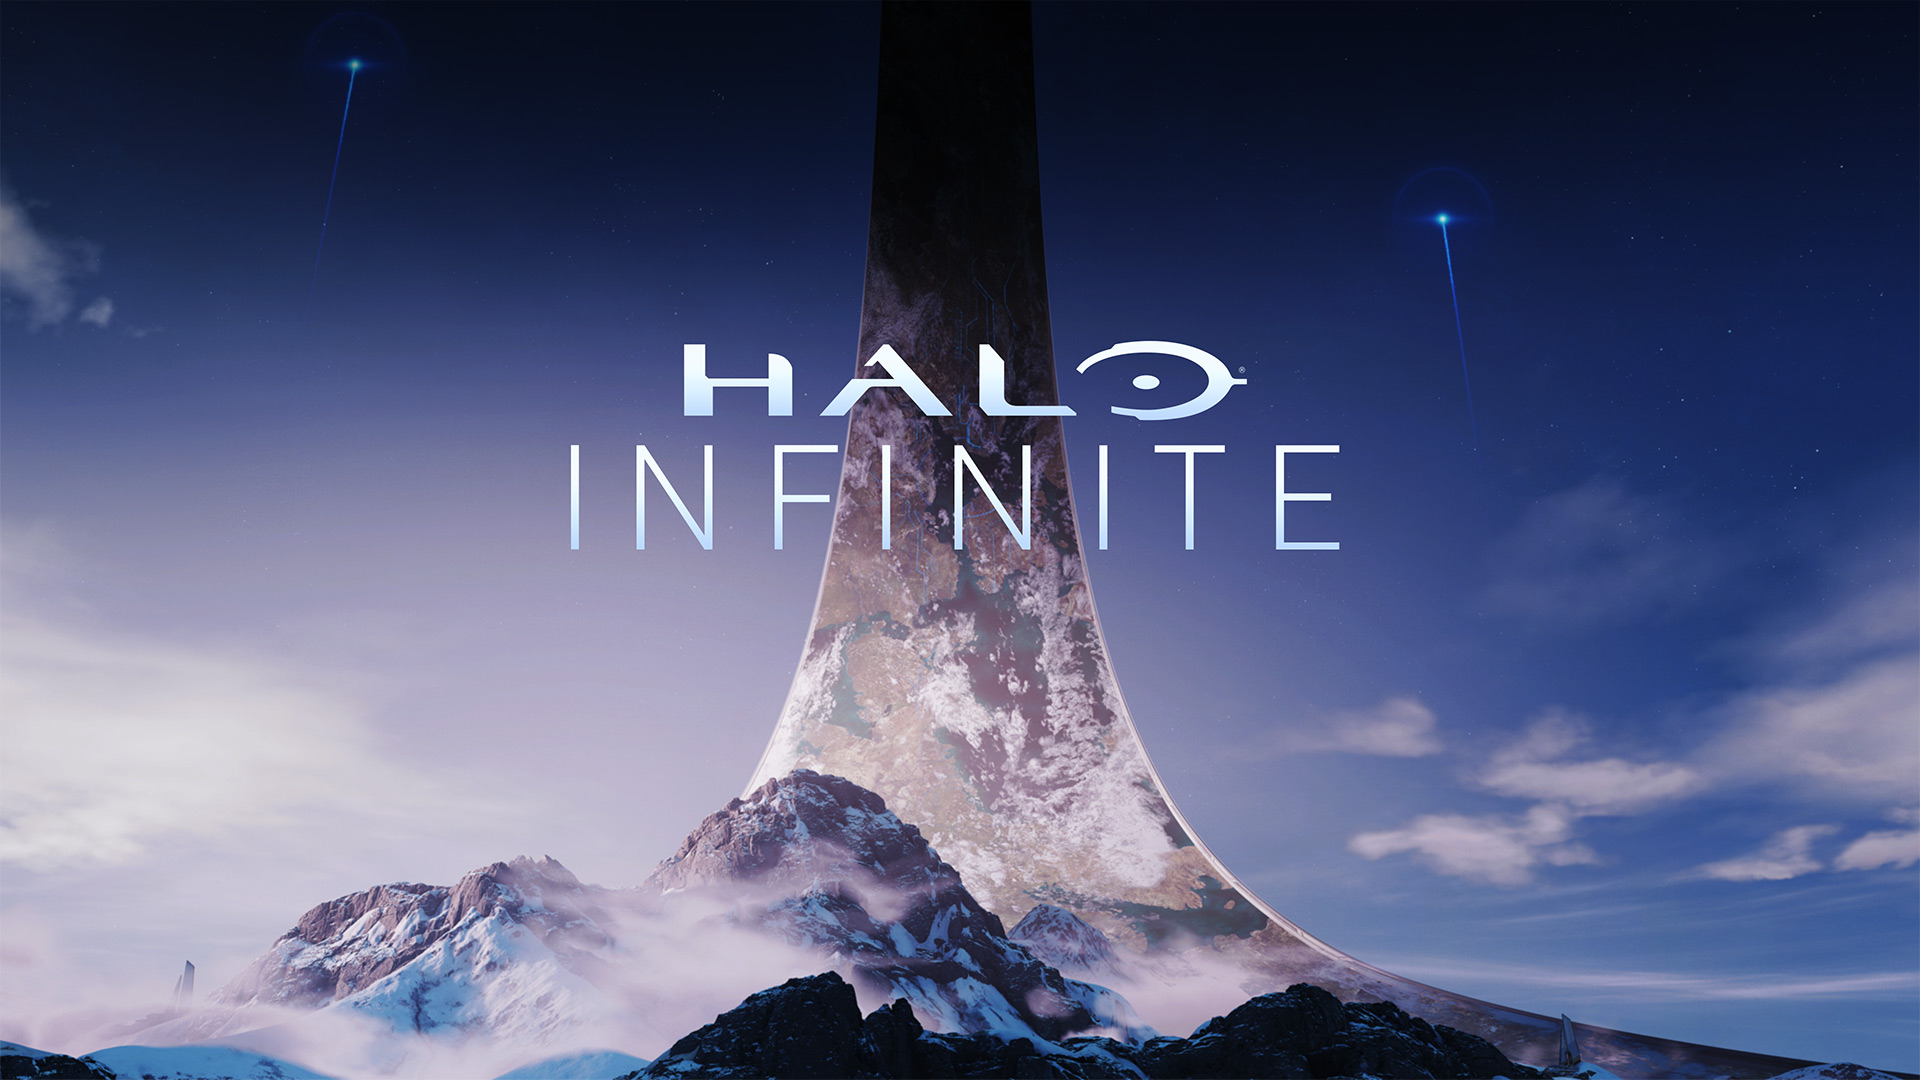 Art graphique Halo Infinite